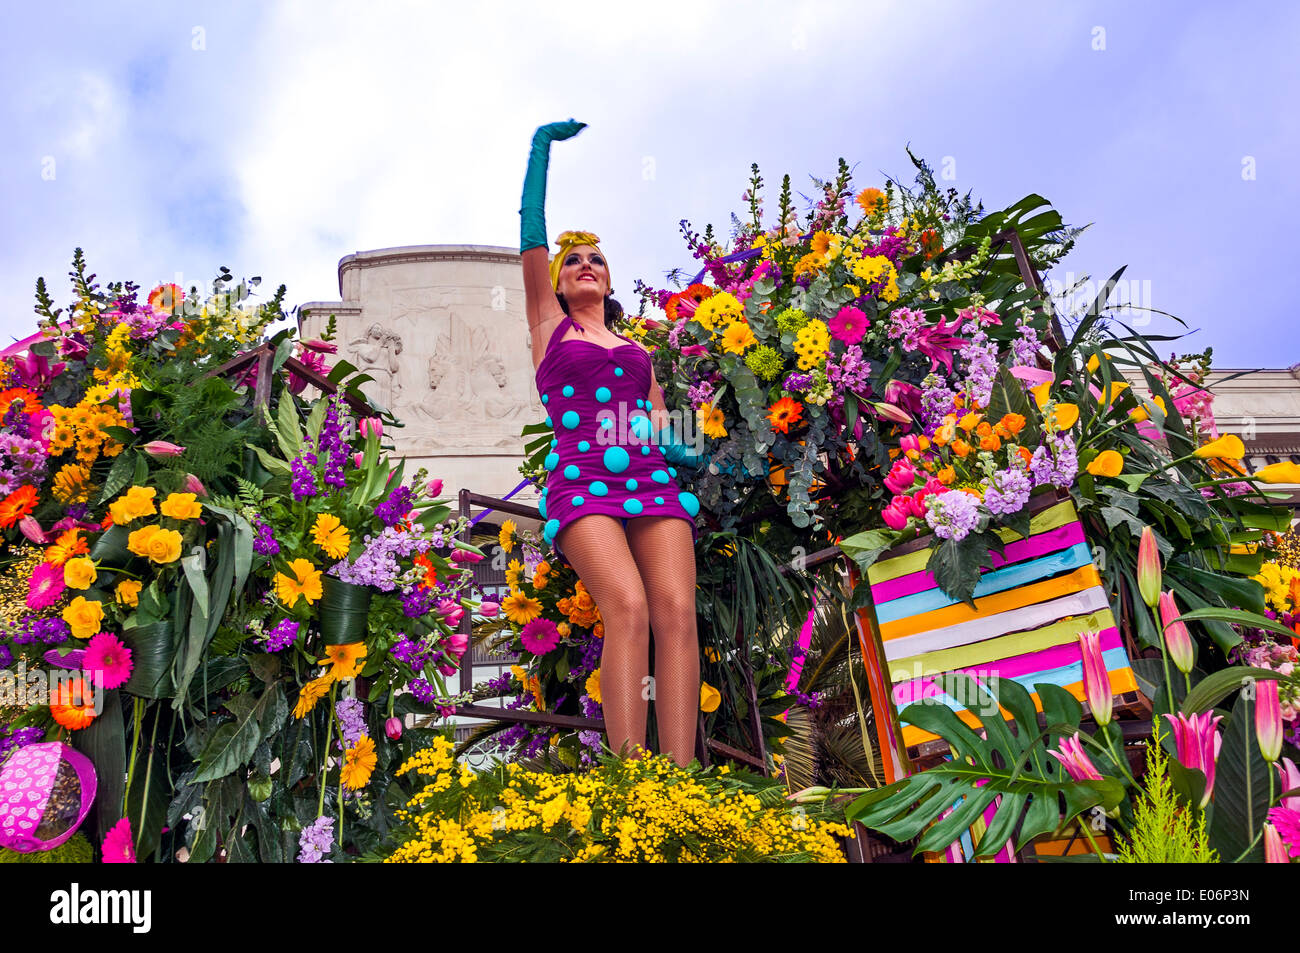 Europe, France, Alpes-Maritimes, Nice. Carnival. Corso fleuri, parade. Young mannequin waving to the crowd. - Stock Image